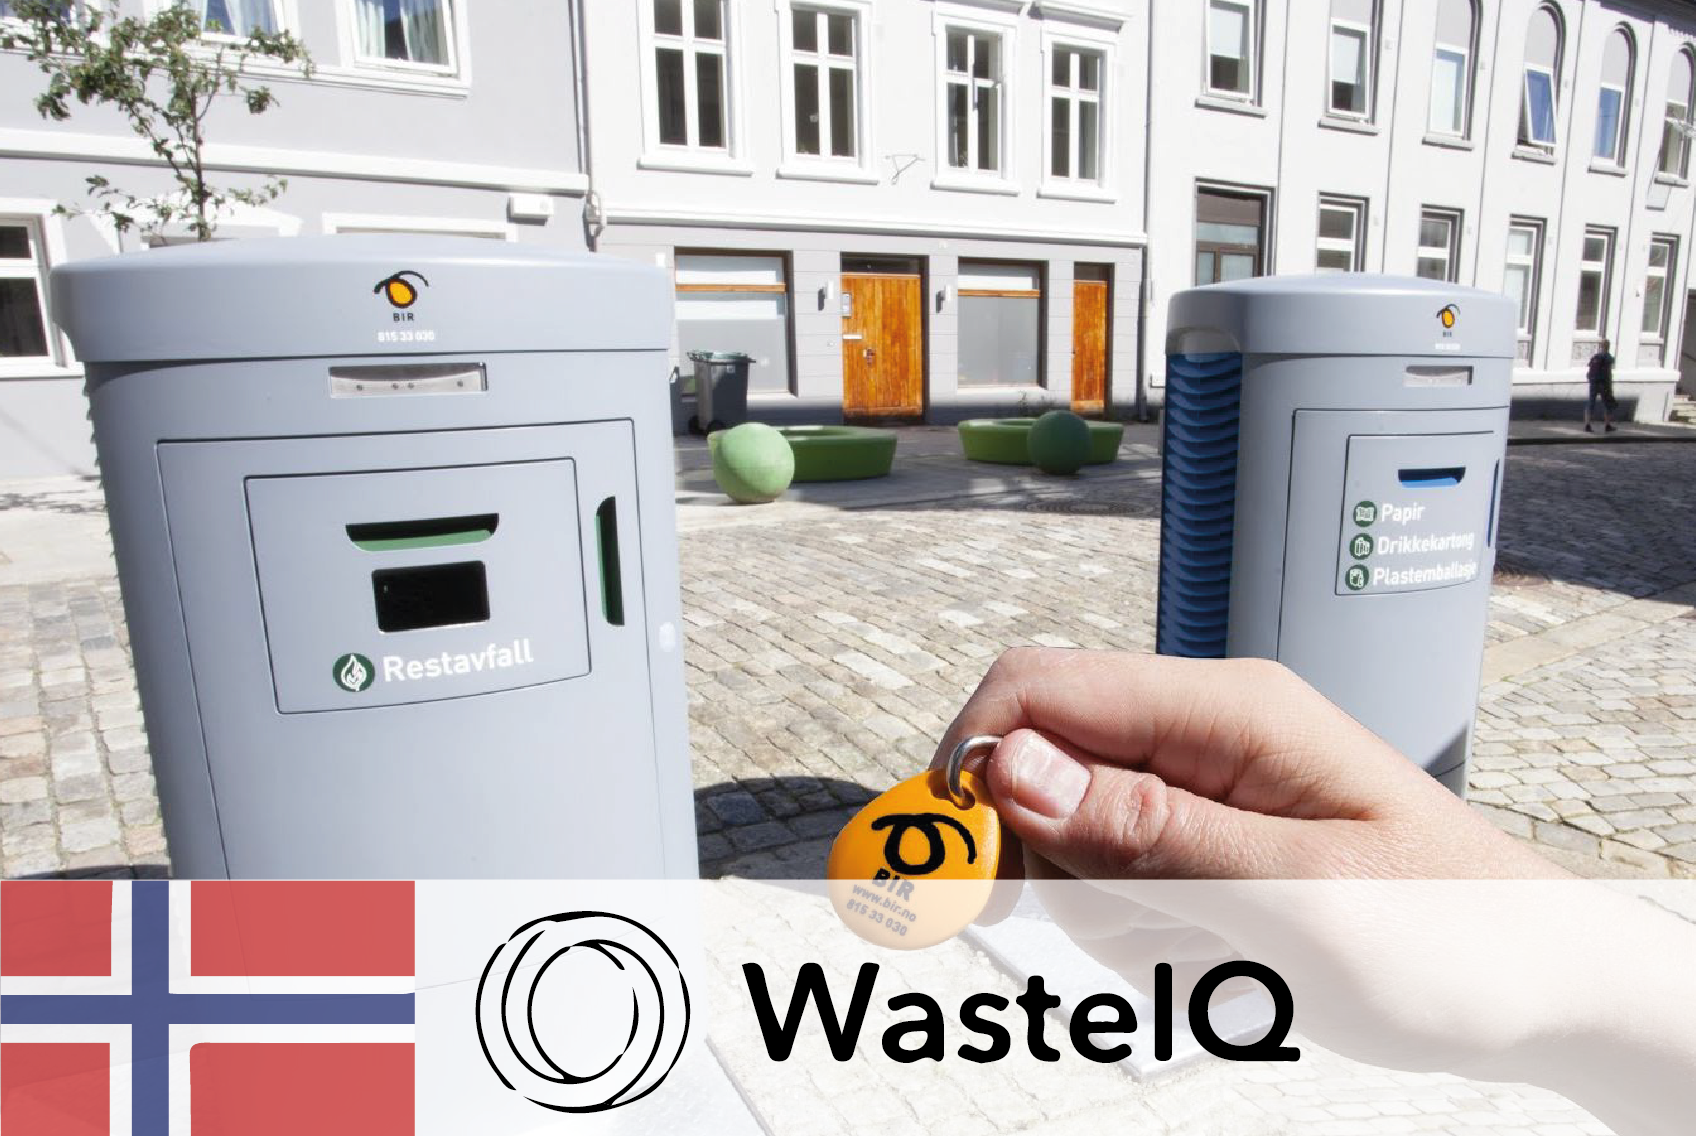 #49 WasteIQ - Smart waste management by pay-as-you-throw - CIRCit Nord